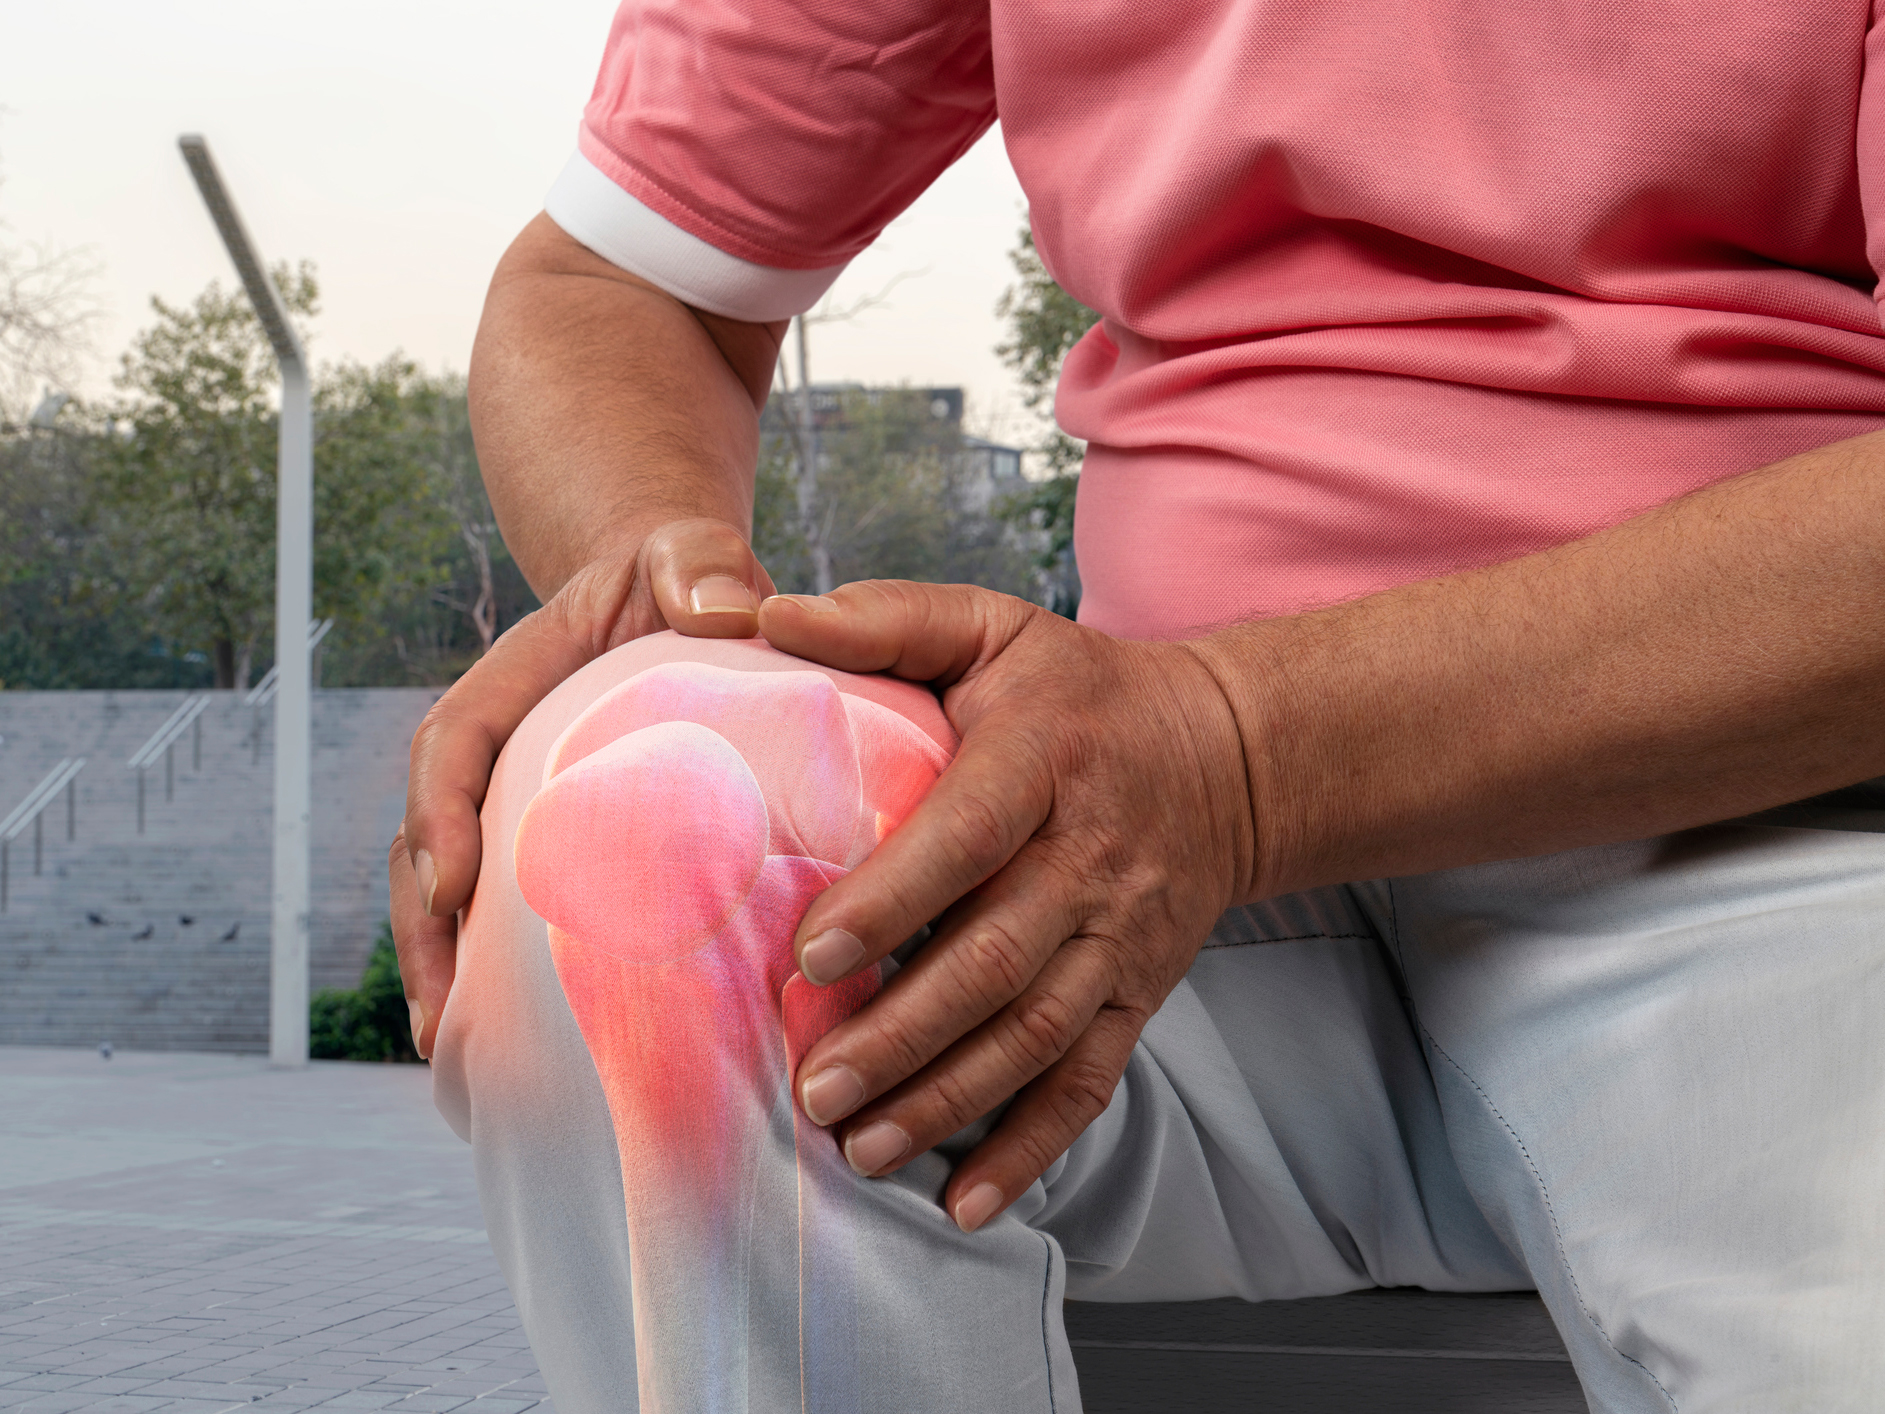 Steroid injections for knee pain